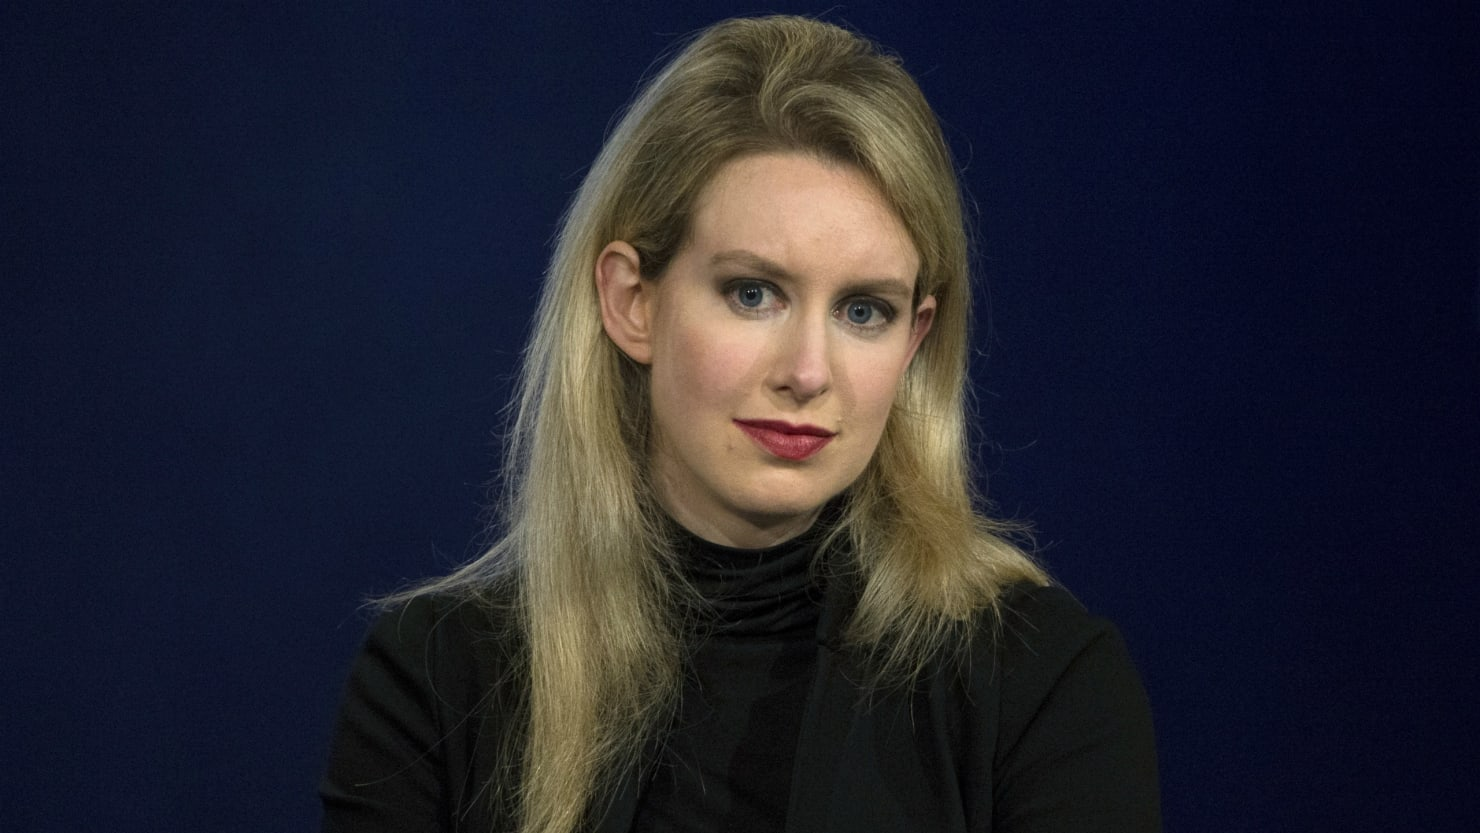 Elizabeth Holmes of theranos indicted